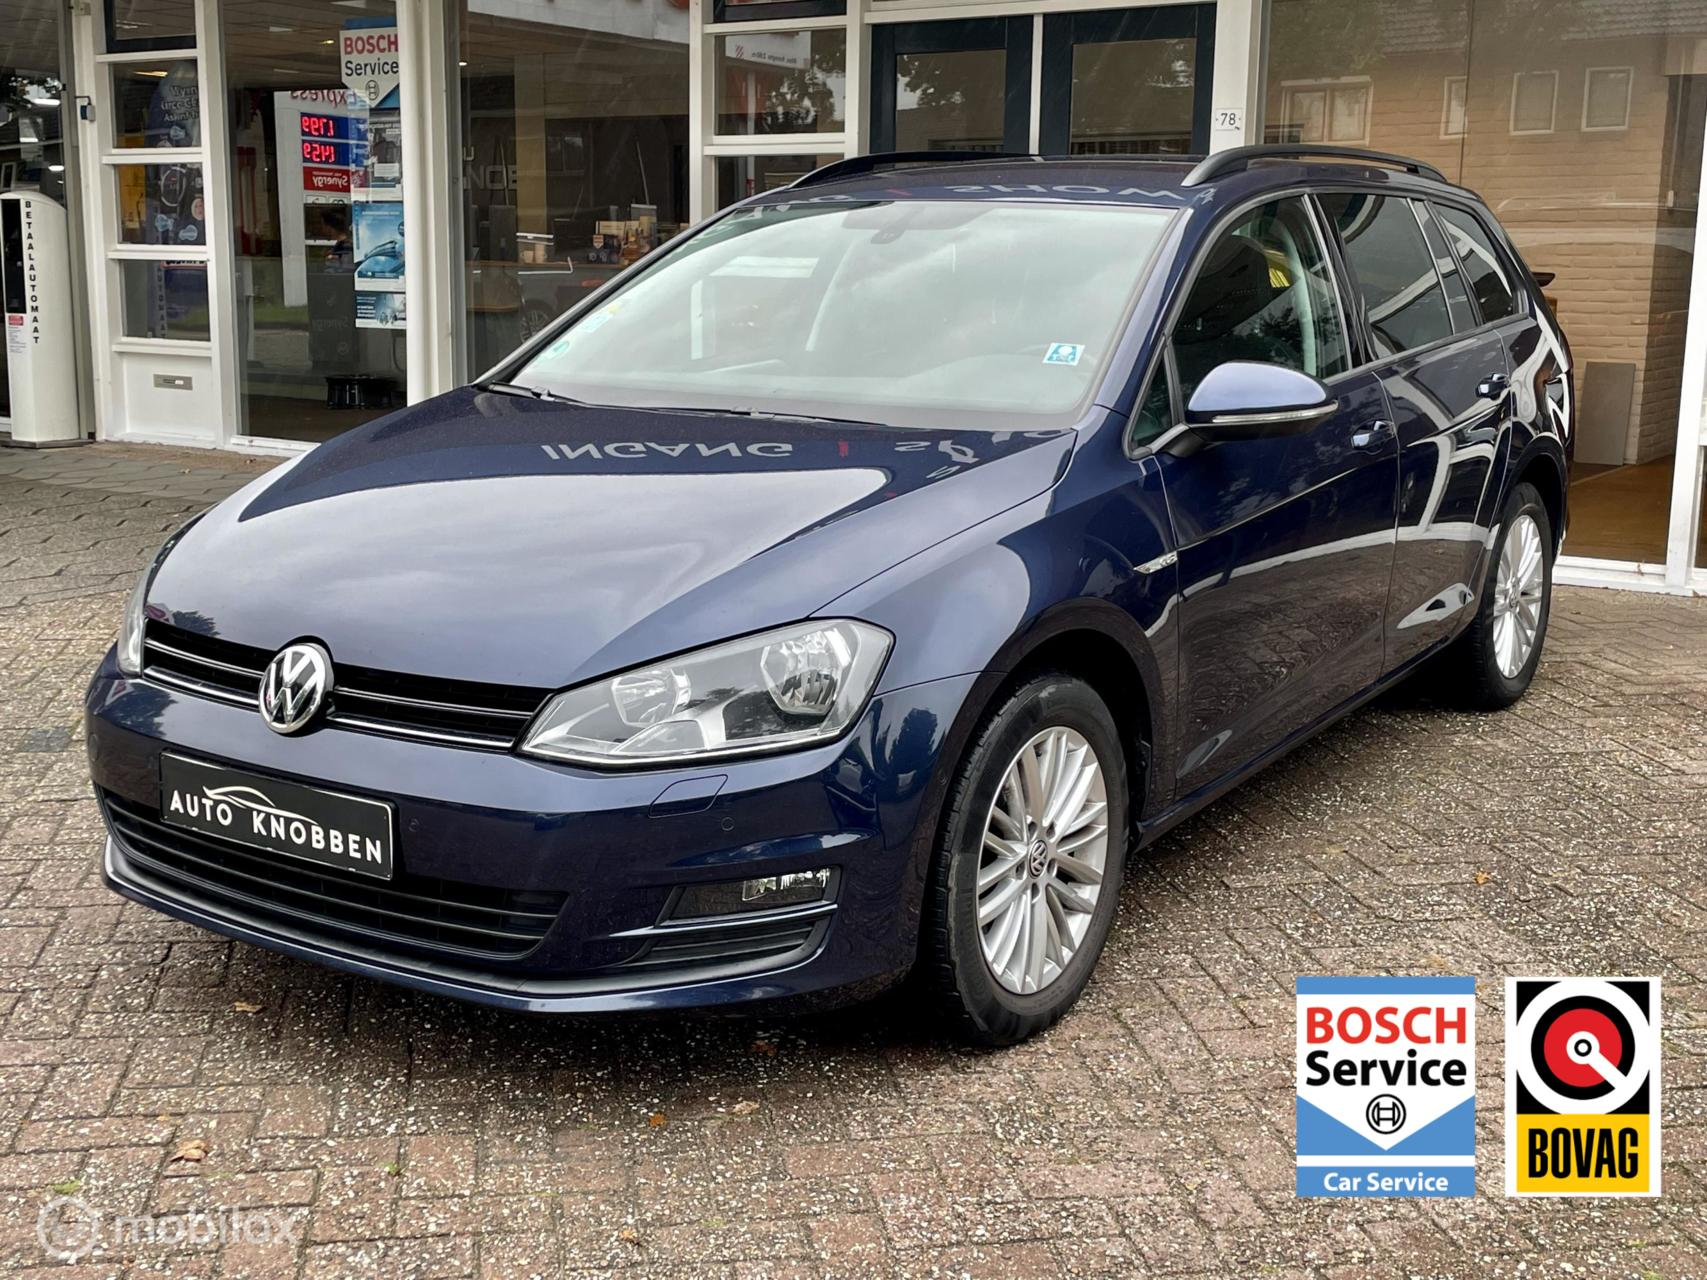 Volkswagen Golf Variant 1.4 TSI Cup, Climat, Pdc, Lm..